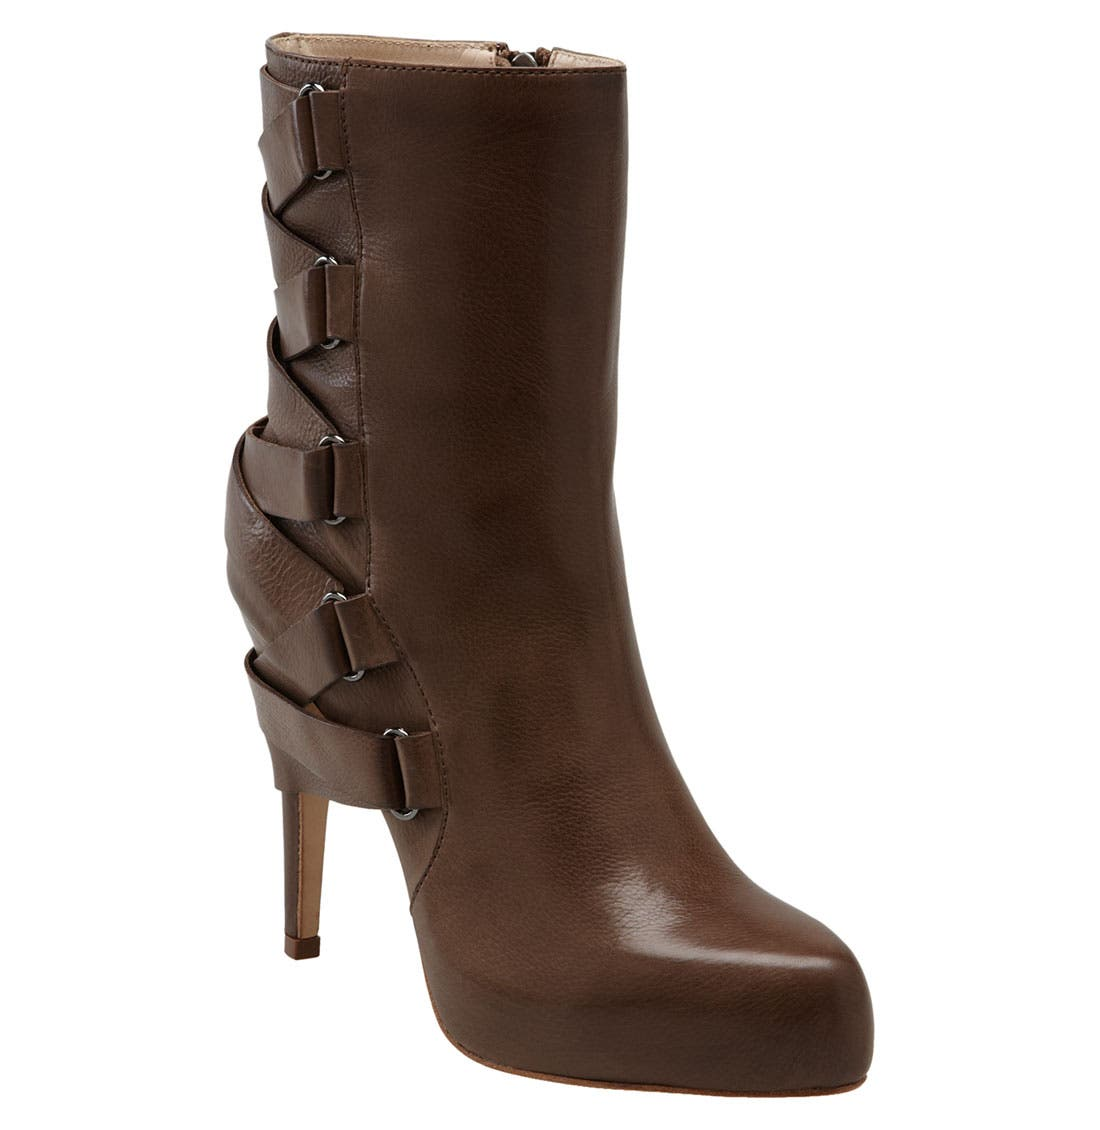 'Strut' Ankle Boot,                             Main thumbnail 1, color,                             Brown